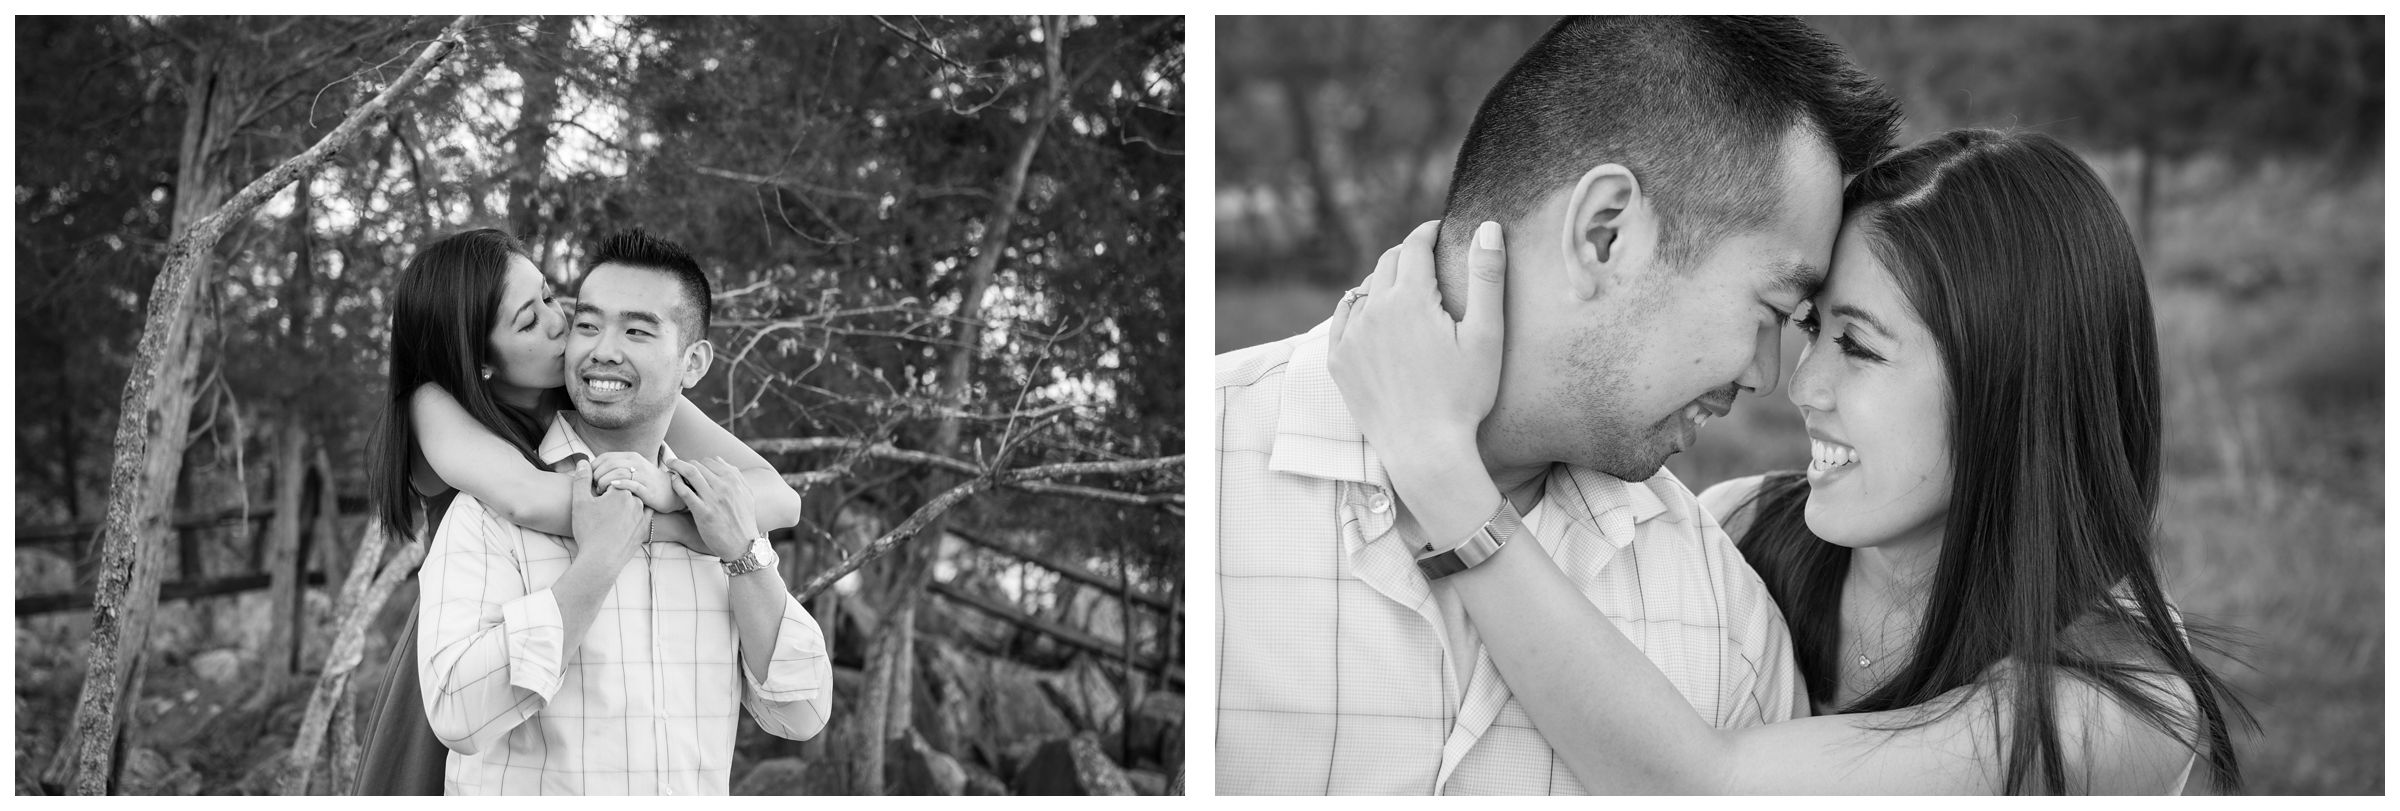 engaged couple amongst trees at Great Falls Park in Northern Virginia